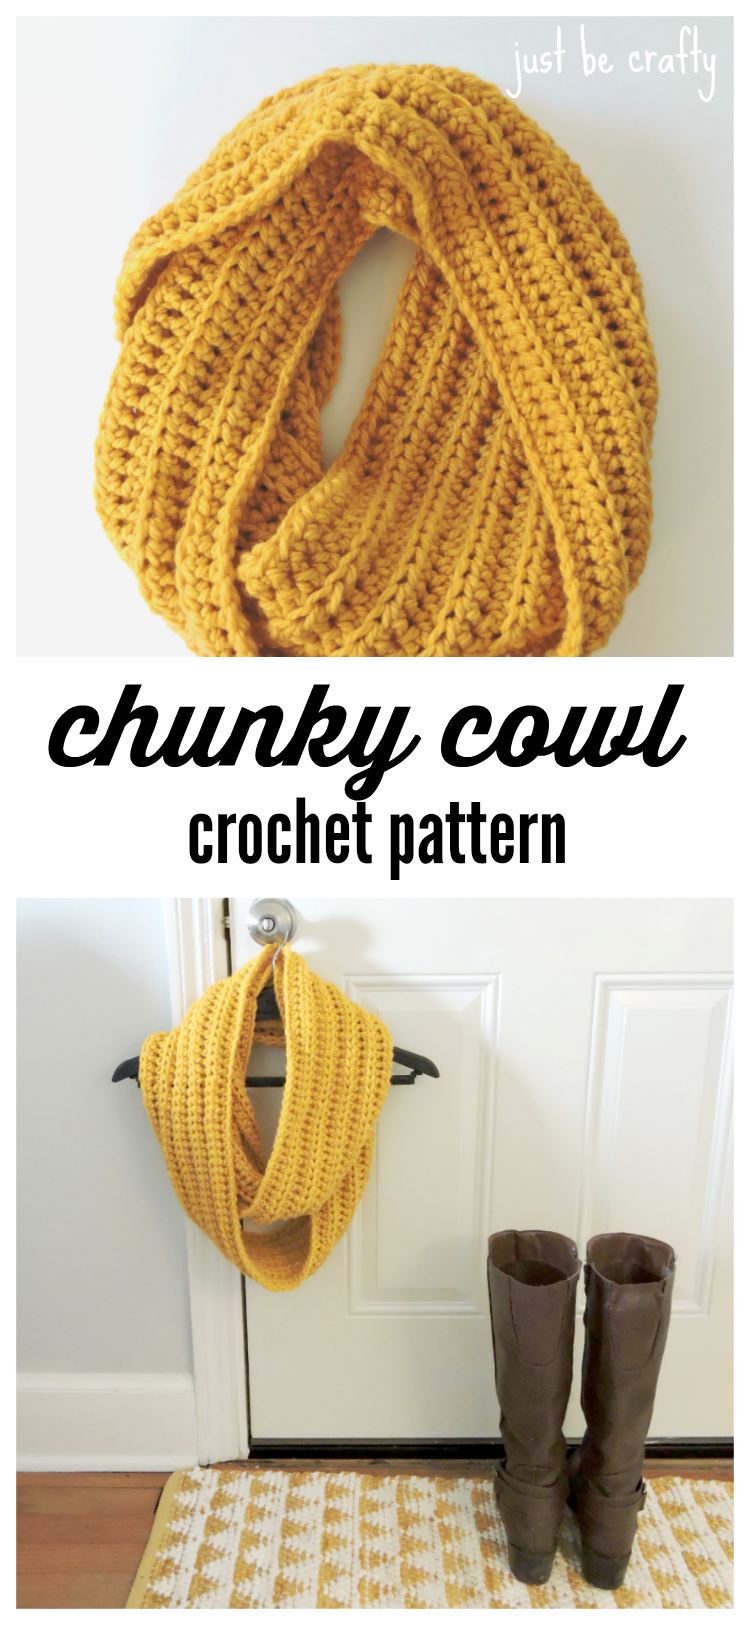 Crochet Patterns I Can Make And Sell : Chunky-Cowl-Crochet-Pattern - DIY Projects for Making Money - Big DIY ...